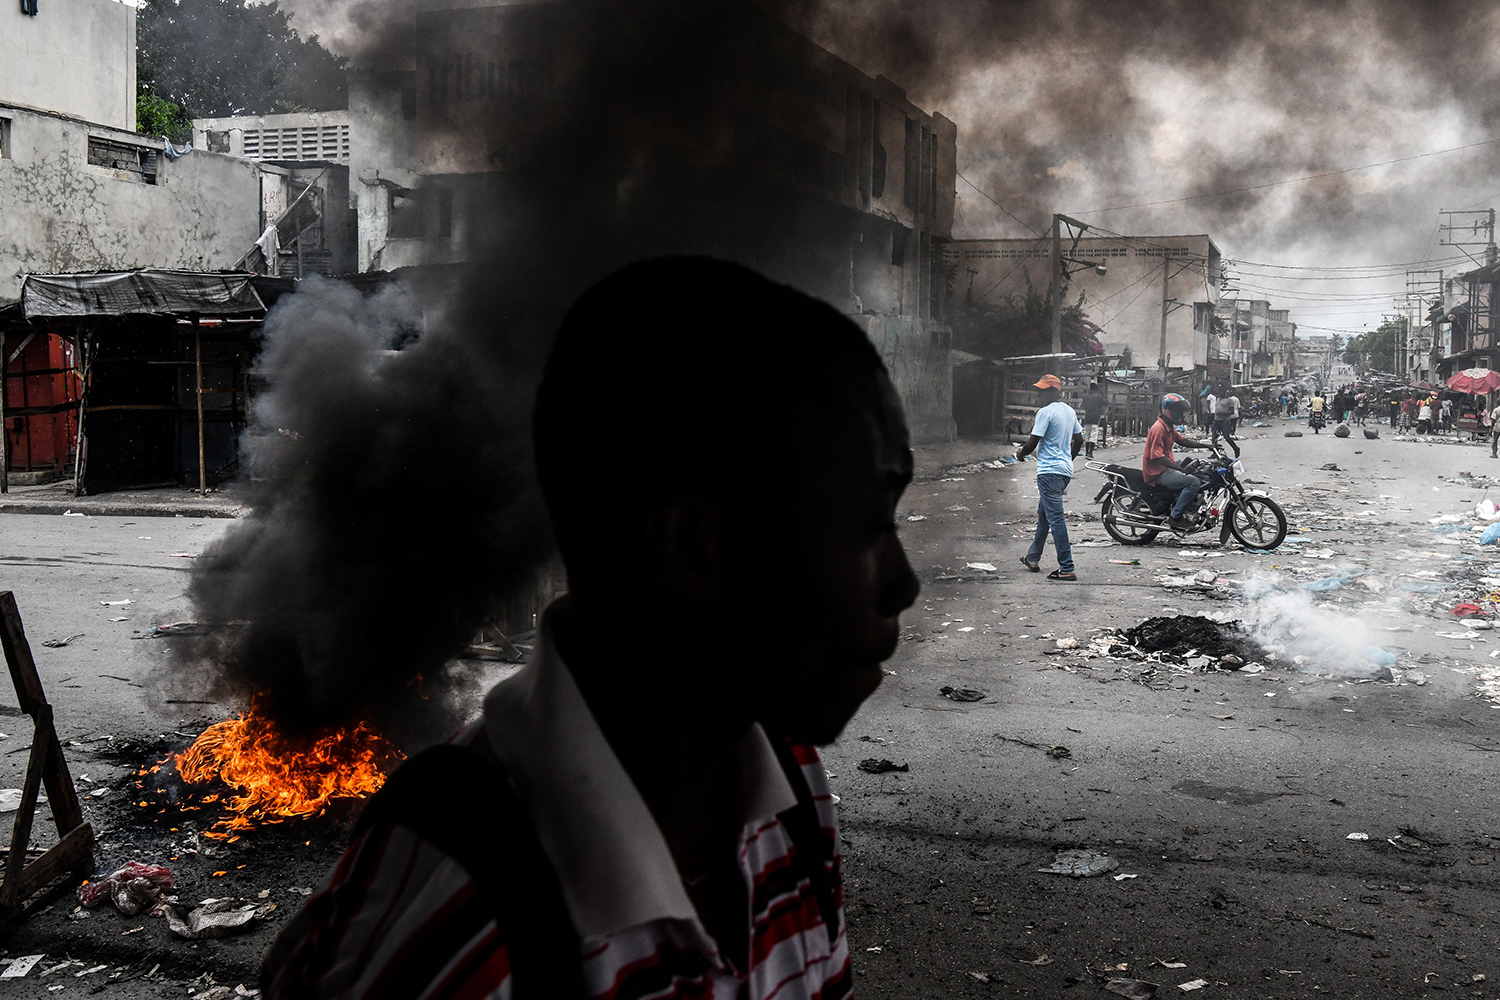 HAITI | A man walks past burning tires during a protest against fuel shortages and to demand the resignation of President Jovenel Moise, in Port-au-Prince on Sept. 25. CHANDAN KHANNA/AFP/Getty Images